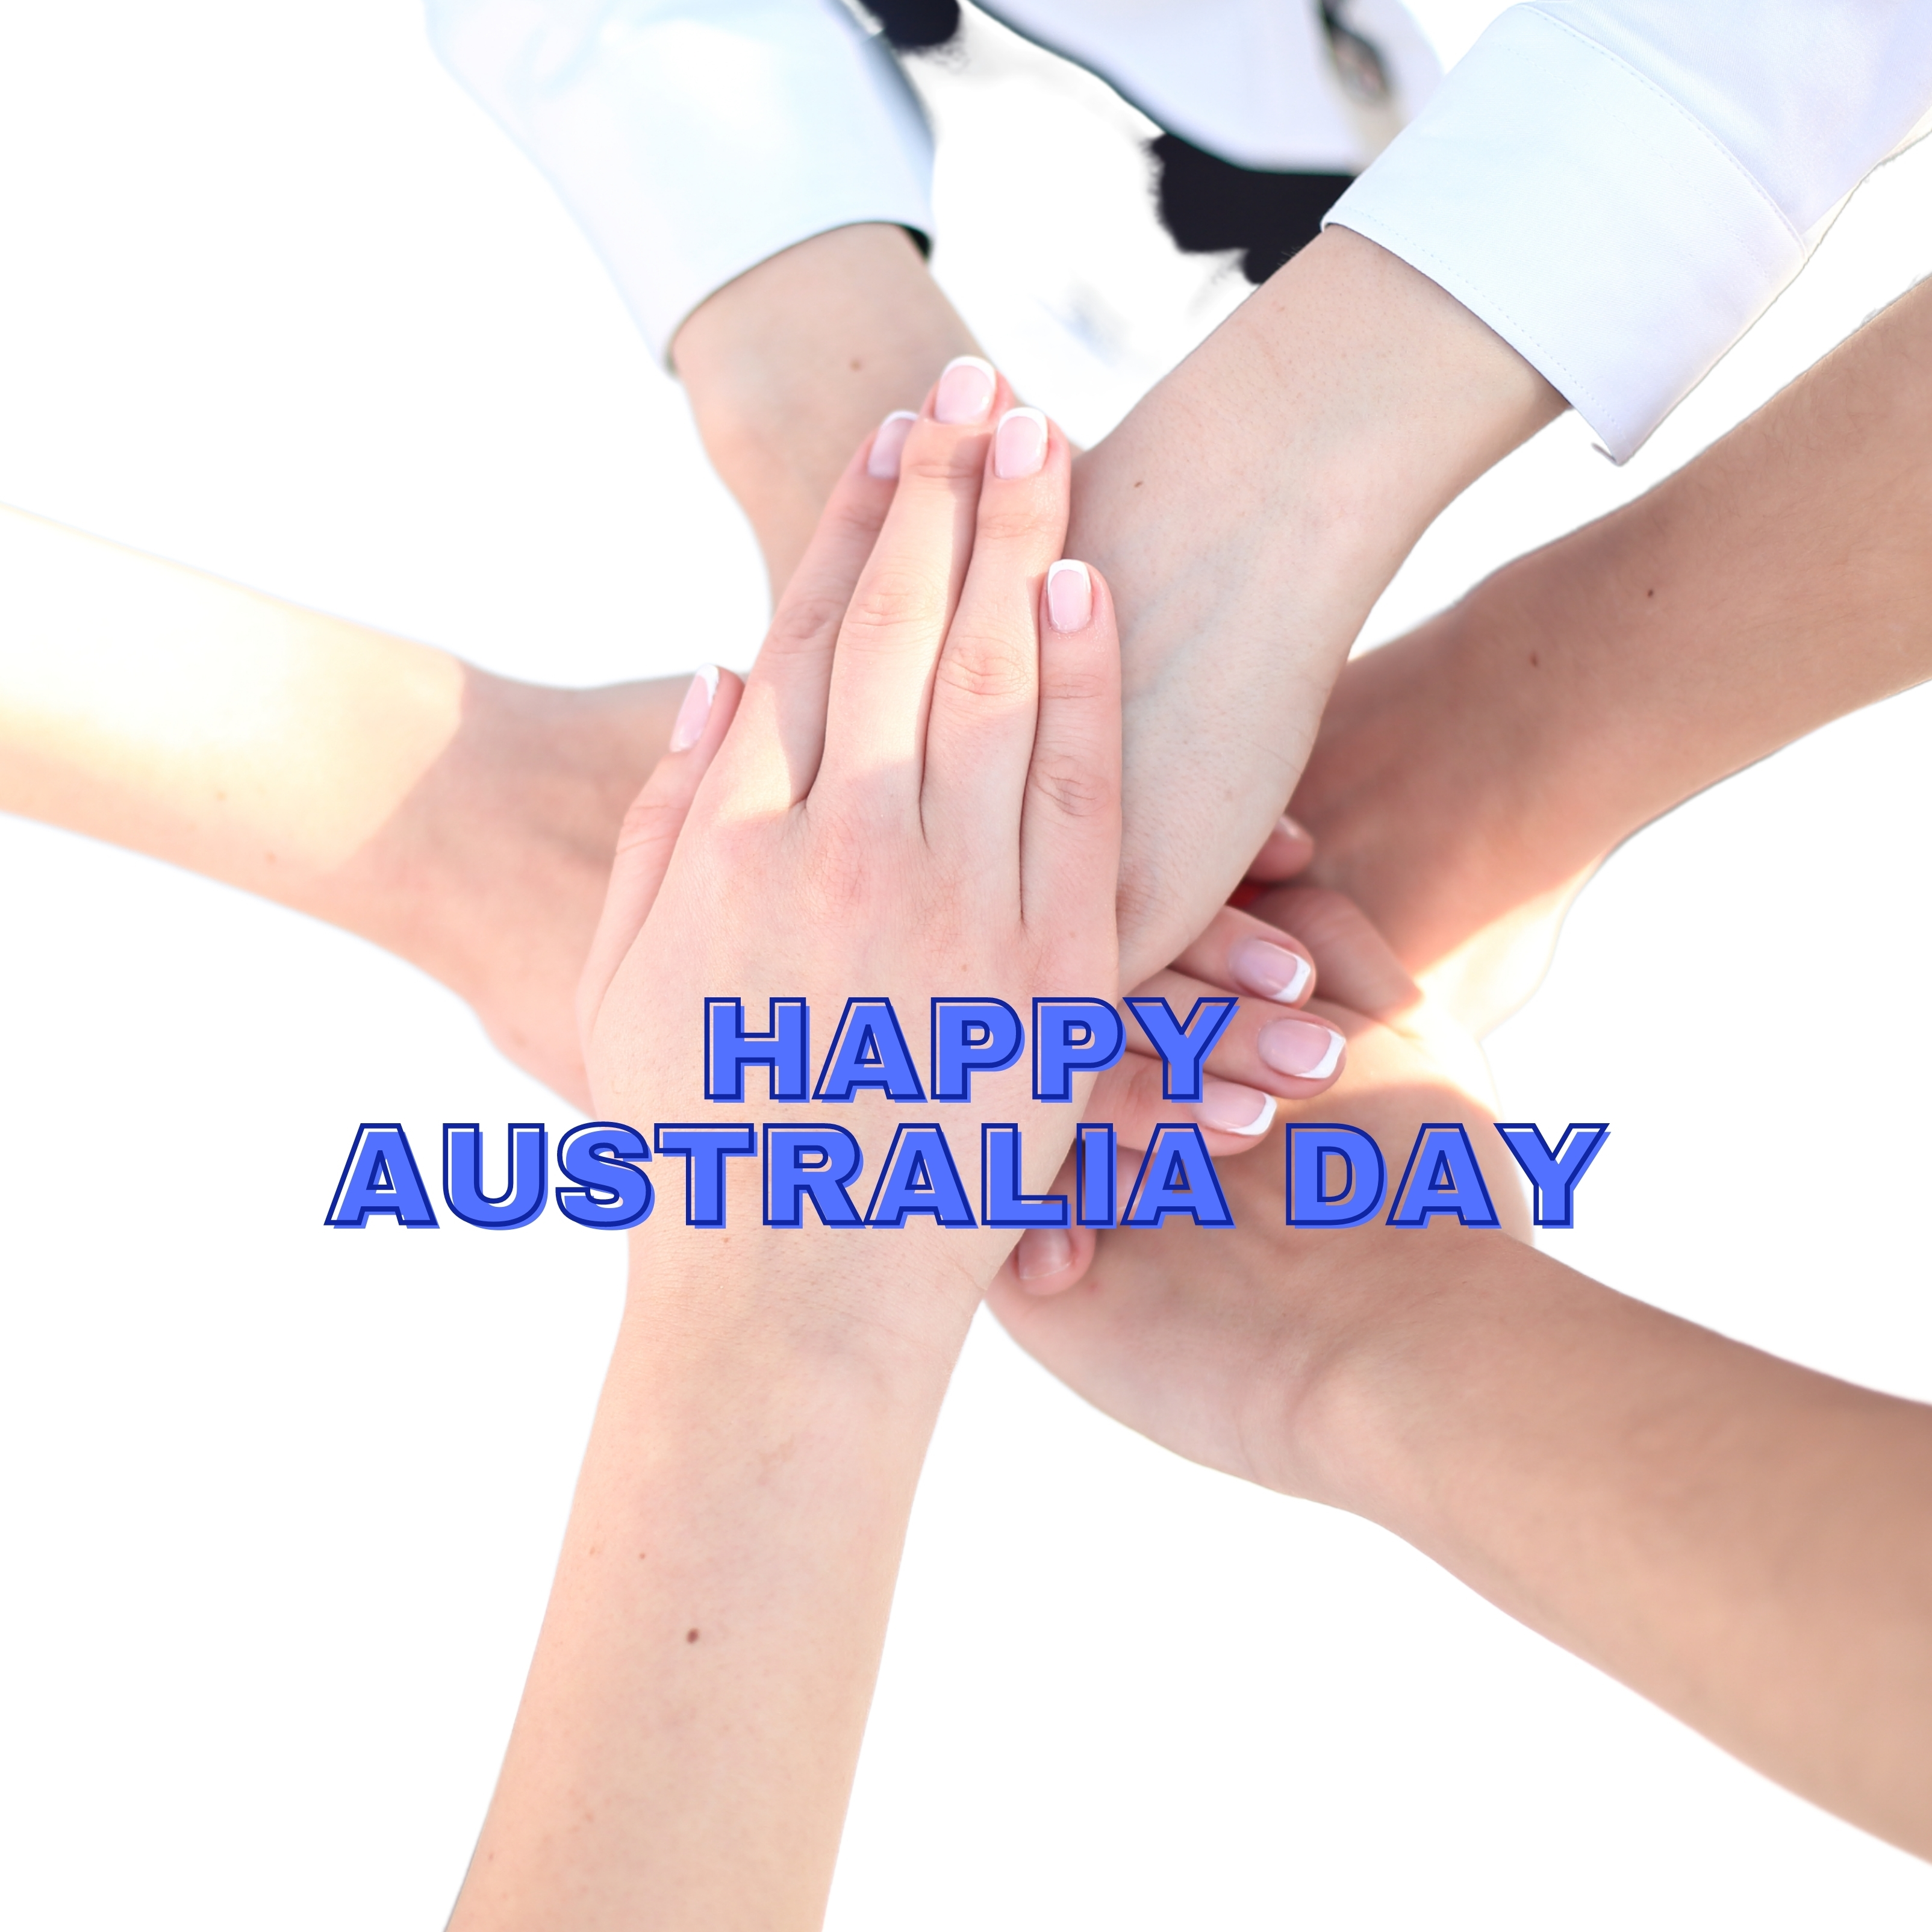 Happy Australia Day 26 January 2021 iPad Wallpaper